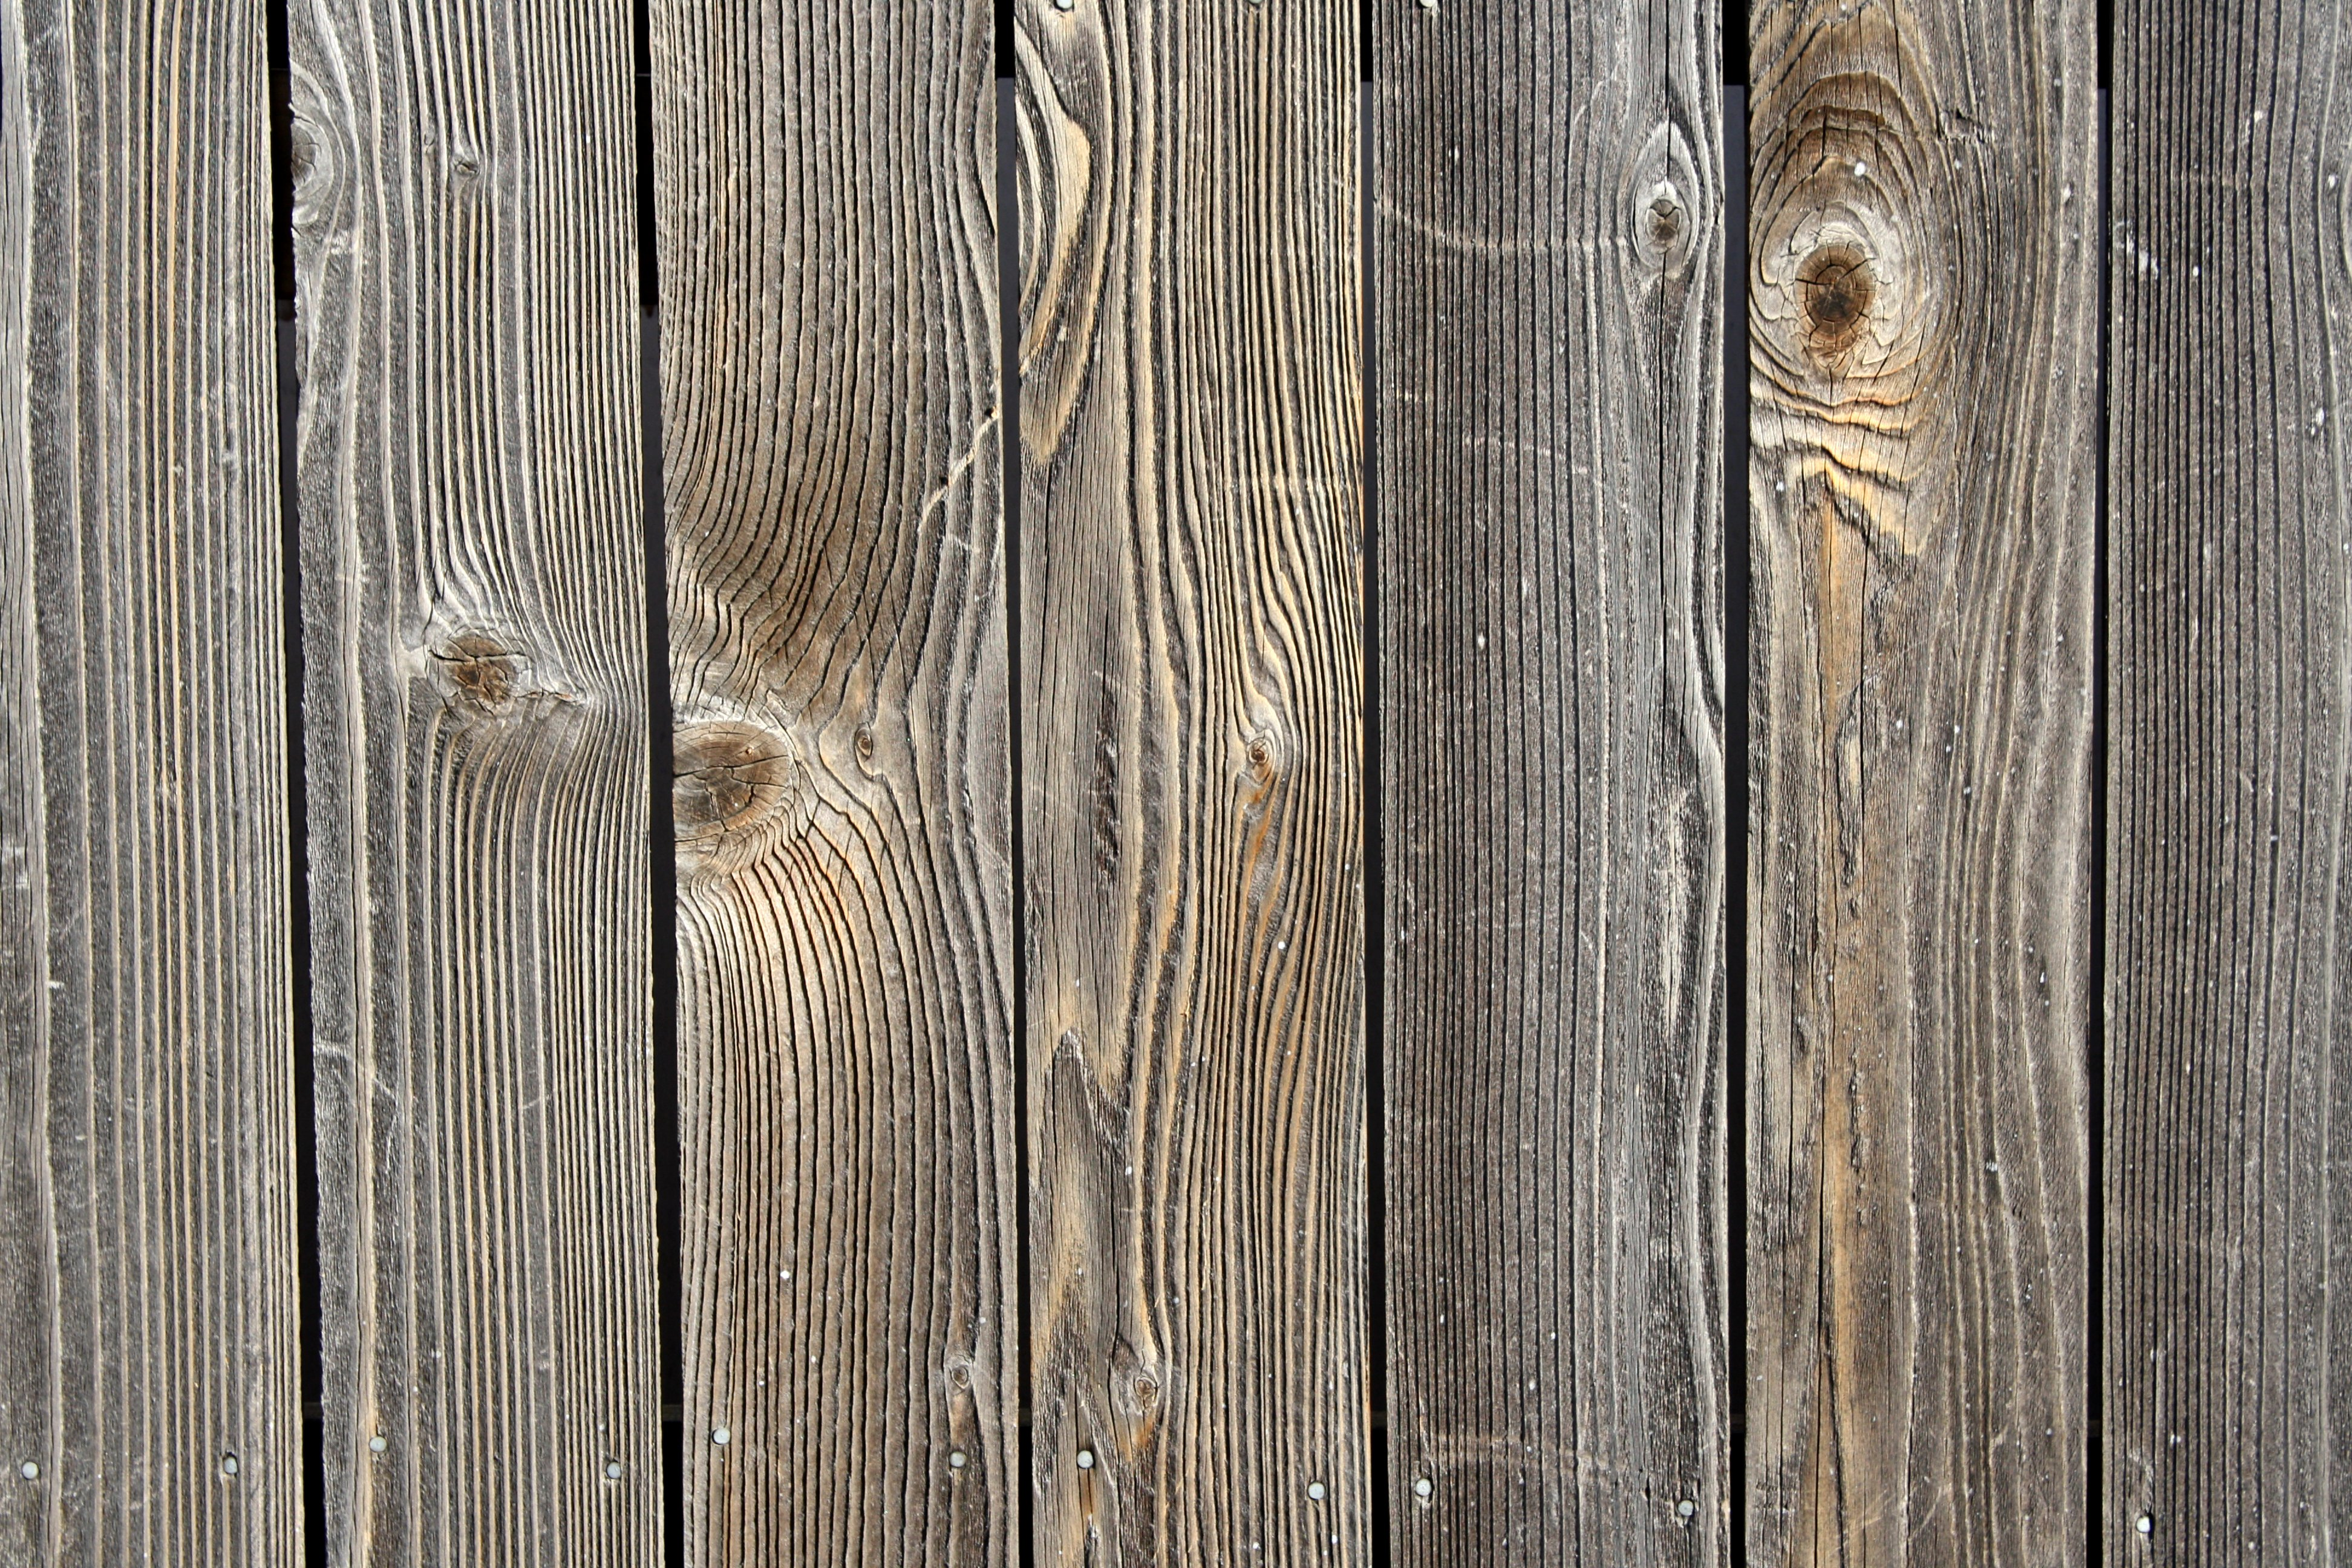 Weathered Wooden Boards Texture Picture Photograph Photos 3888x2592